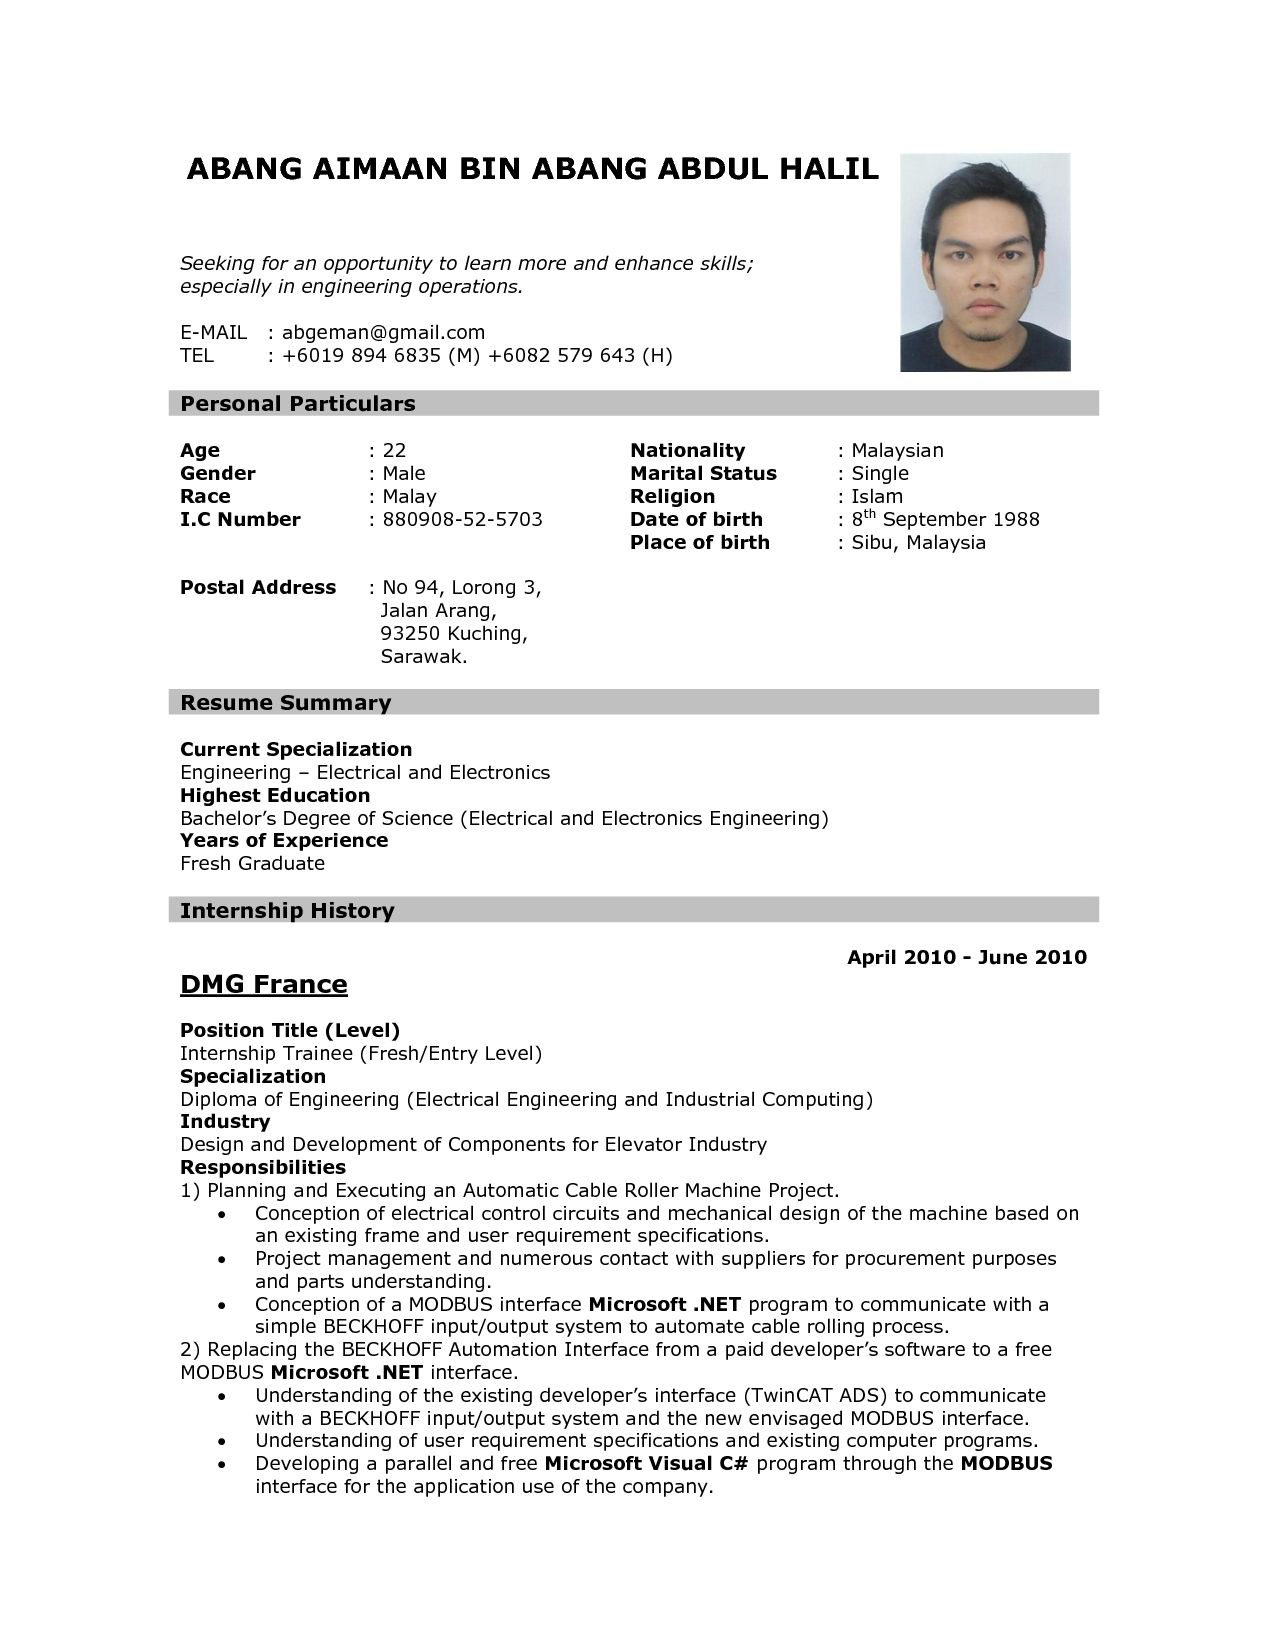 Template Of Resume Format Of Resume For Job Application To Download Data Sample